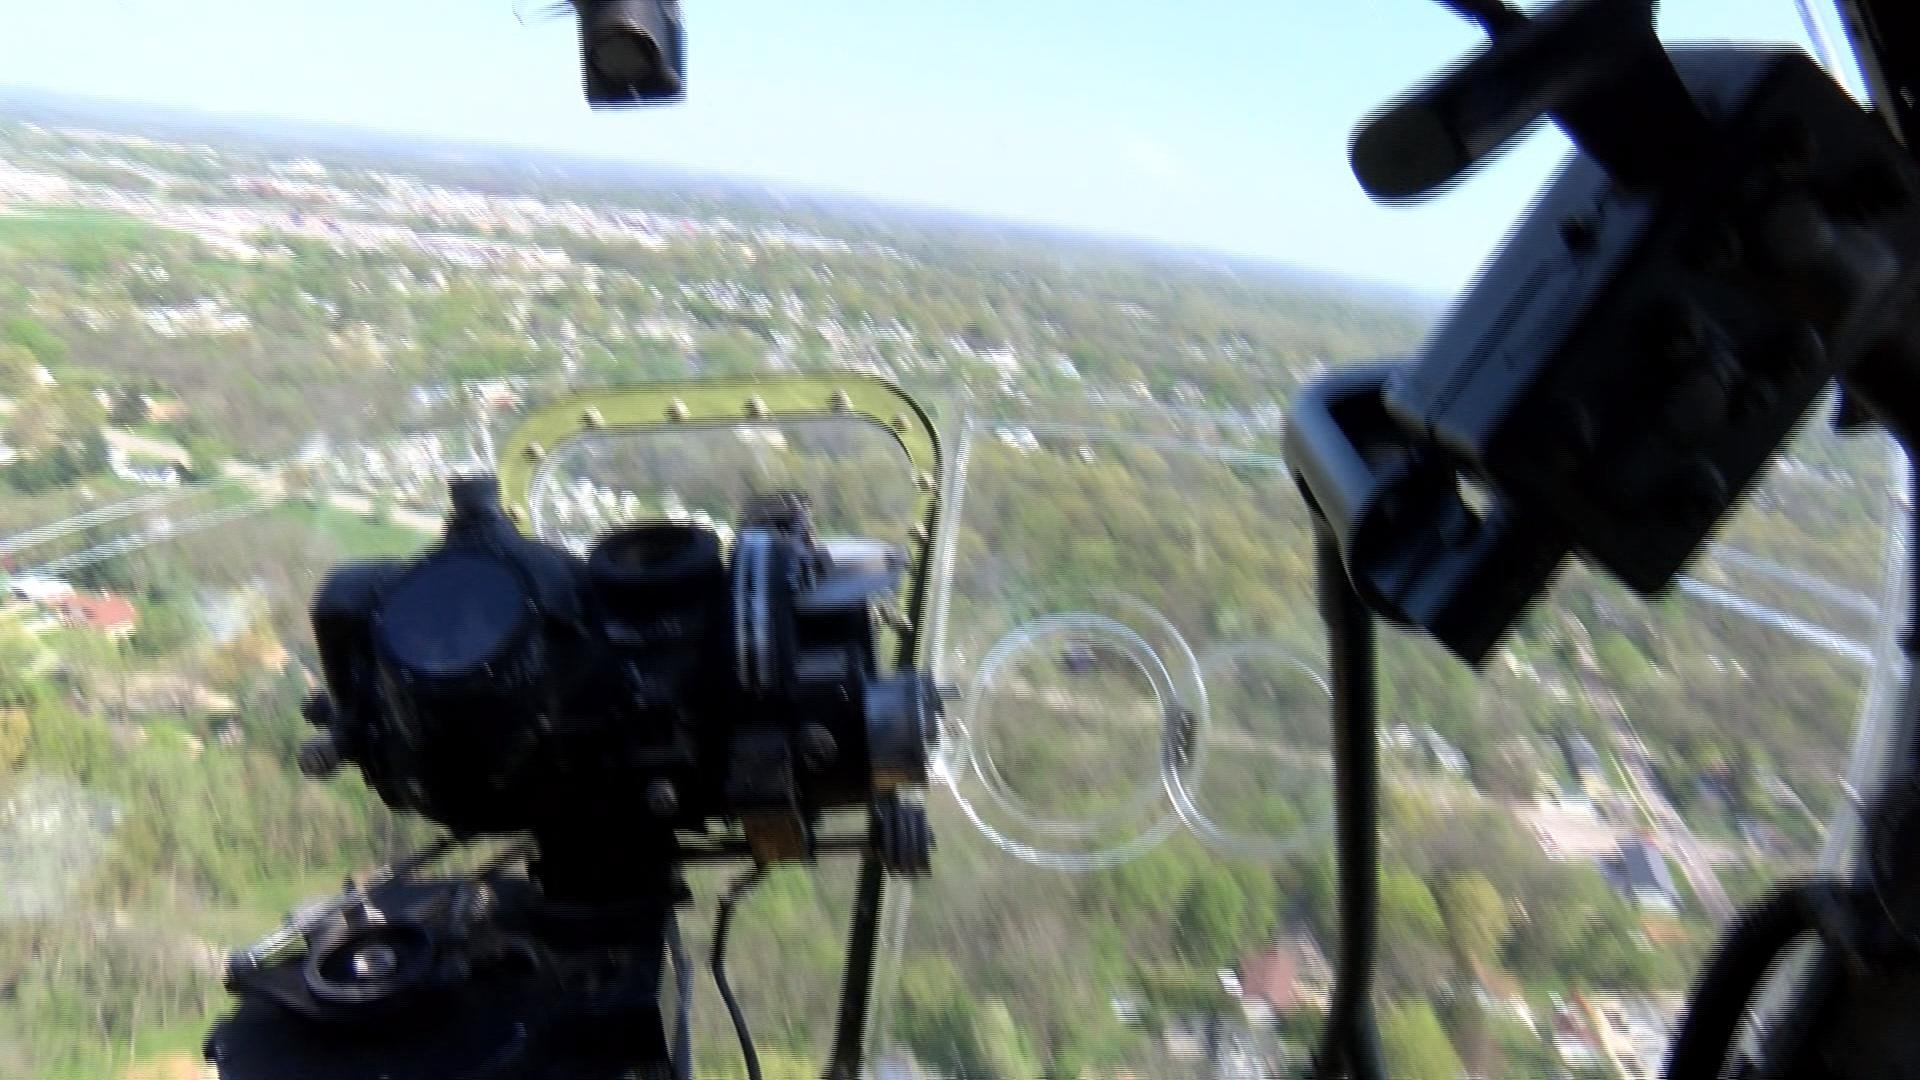 A view from the nose of the B-17 where the bombardier would sit.